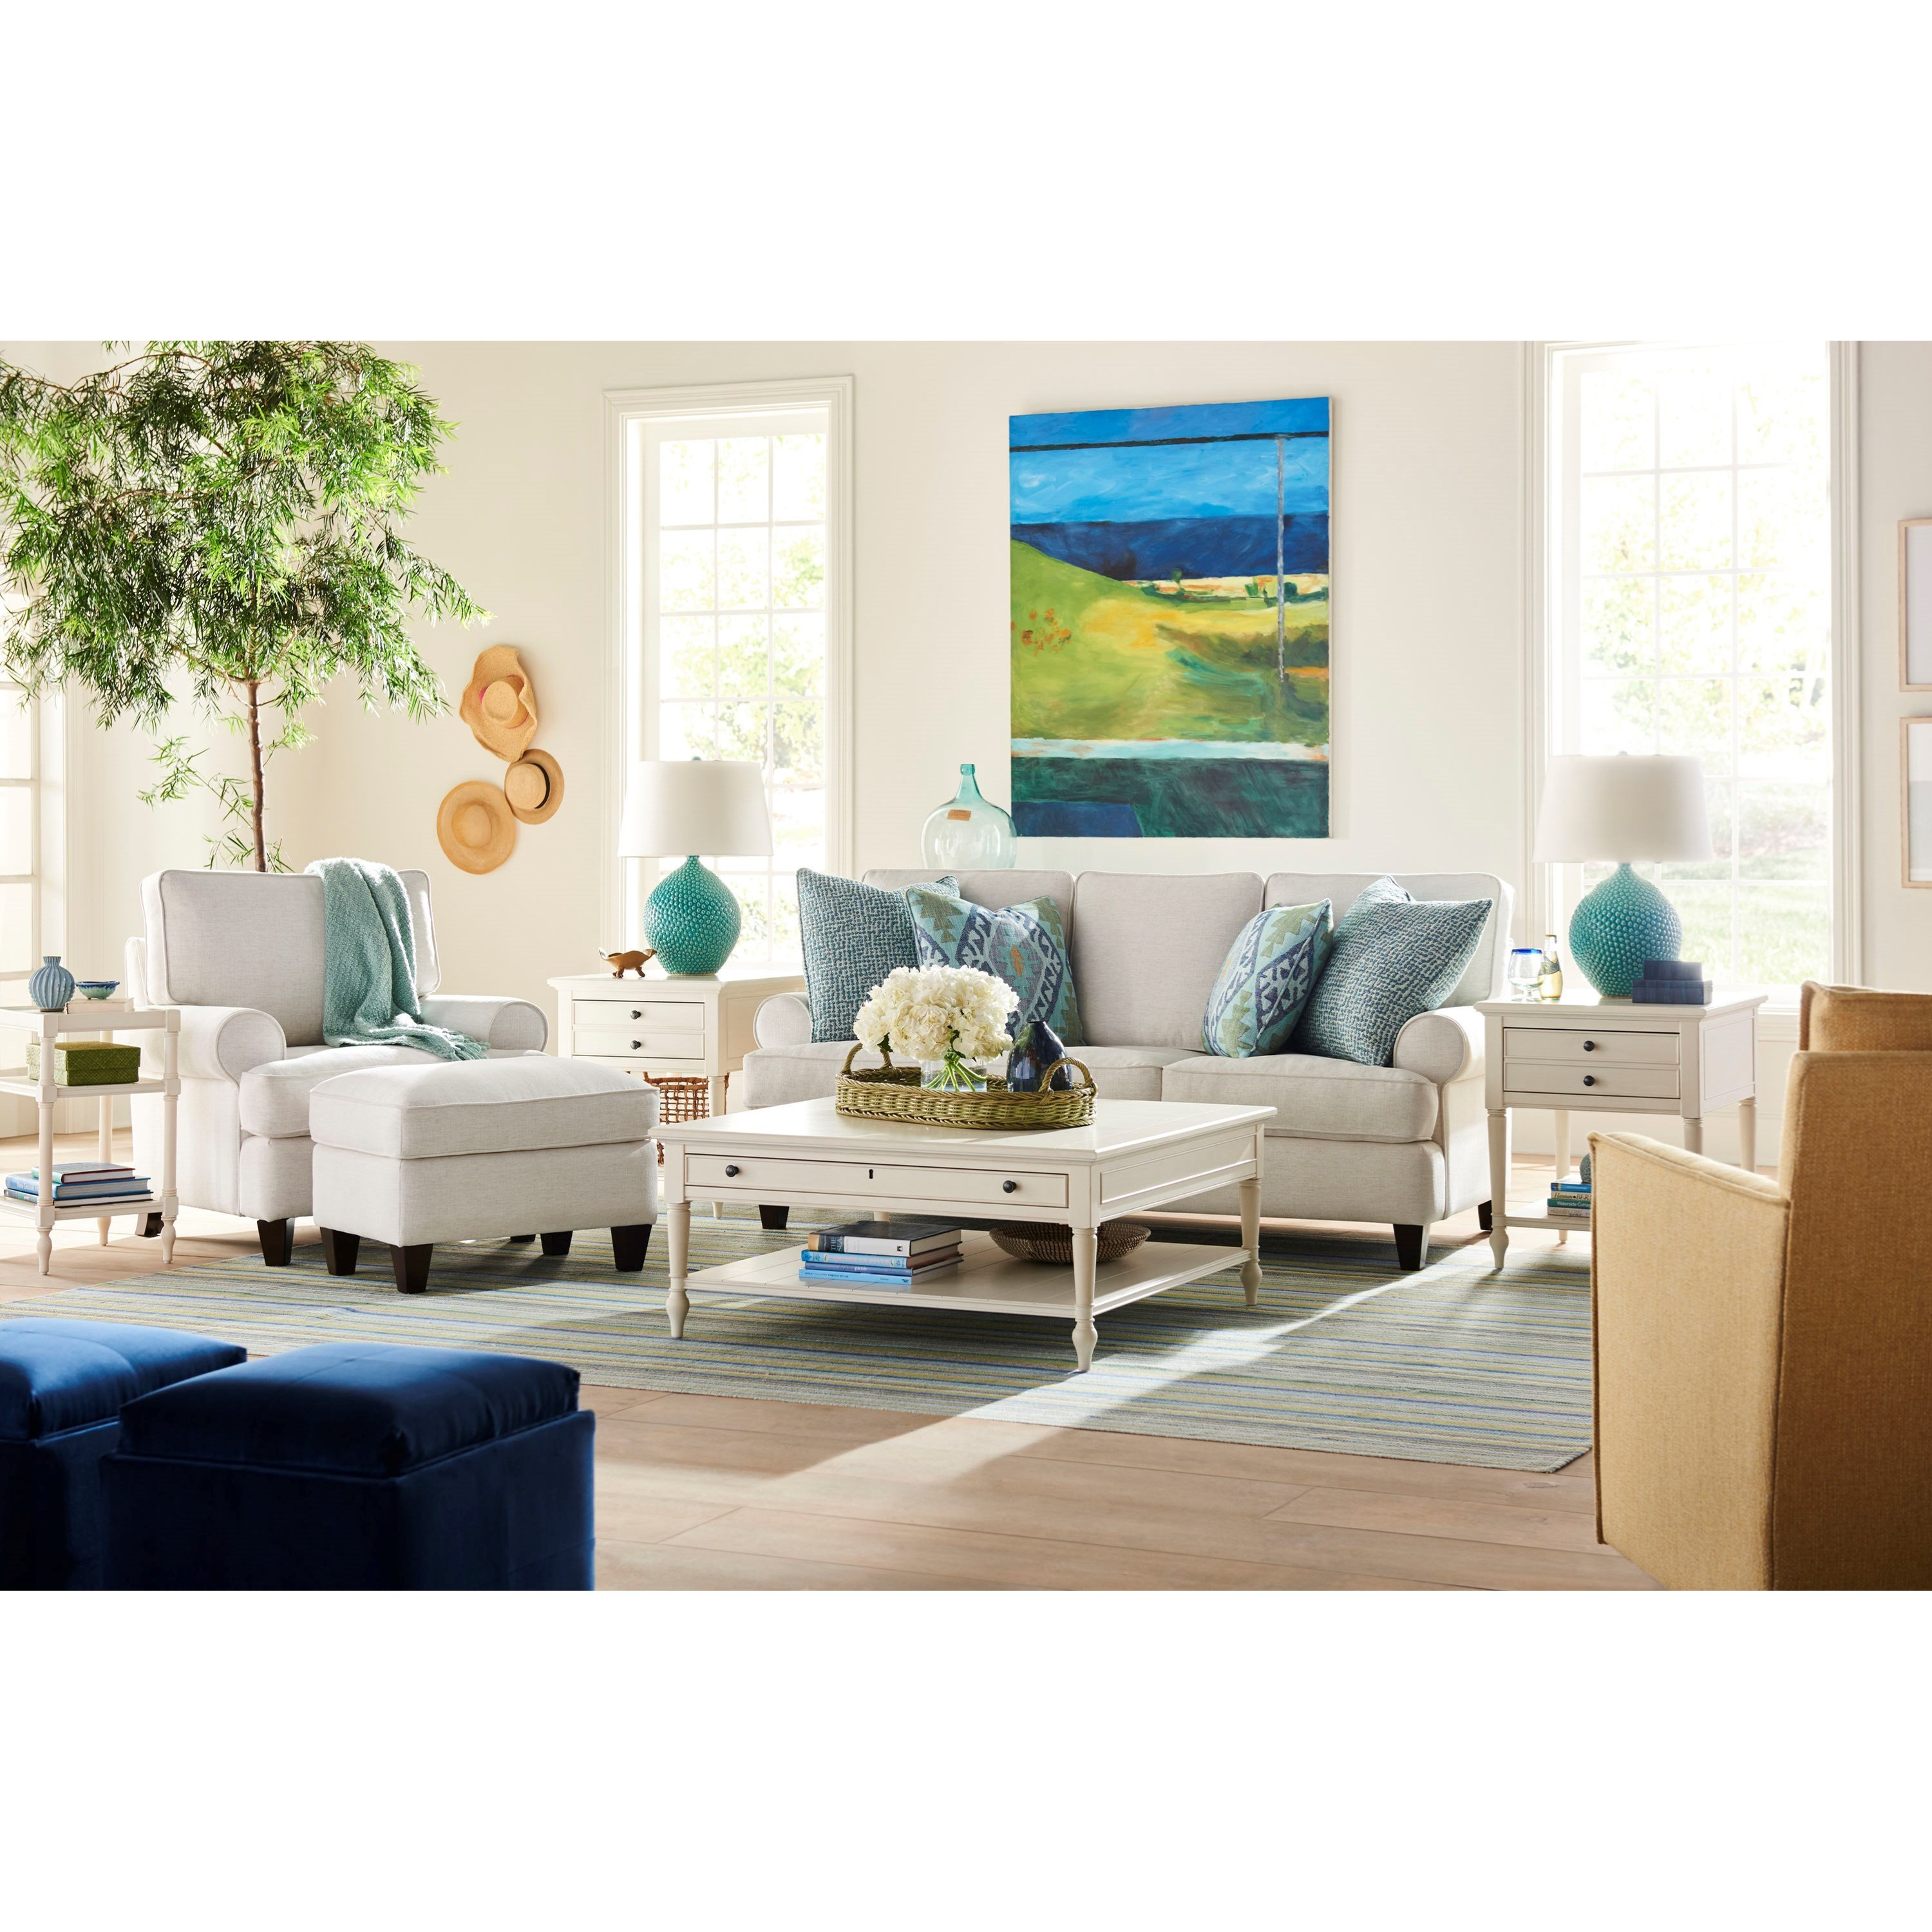 Blakely Living Room Group by Universal at Zak's Home